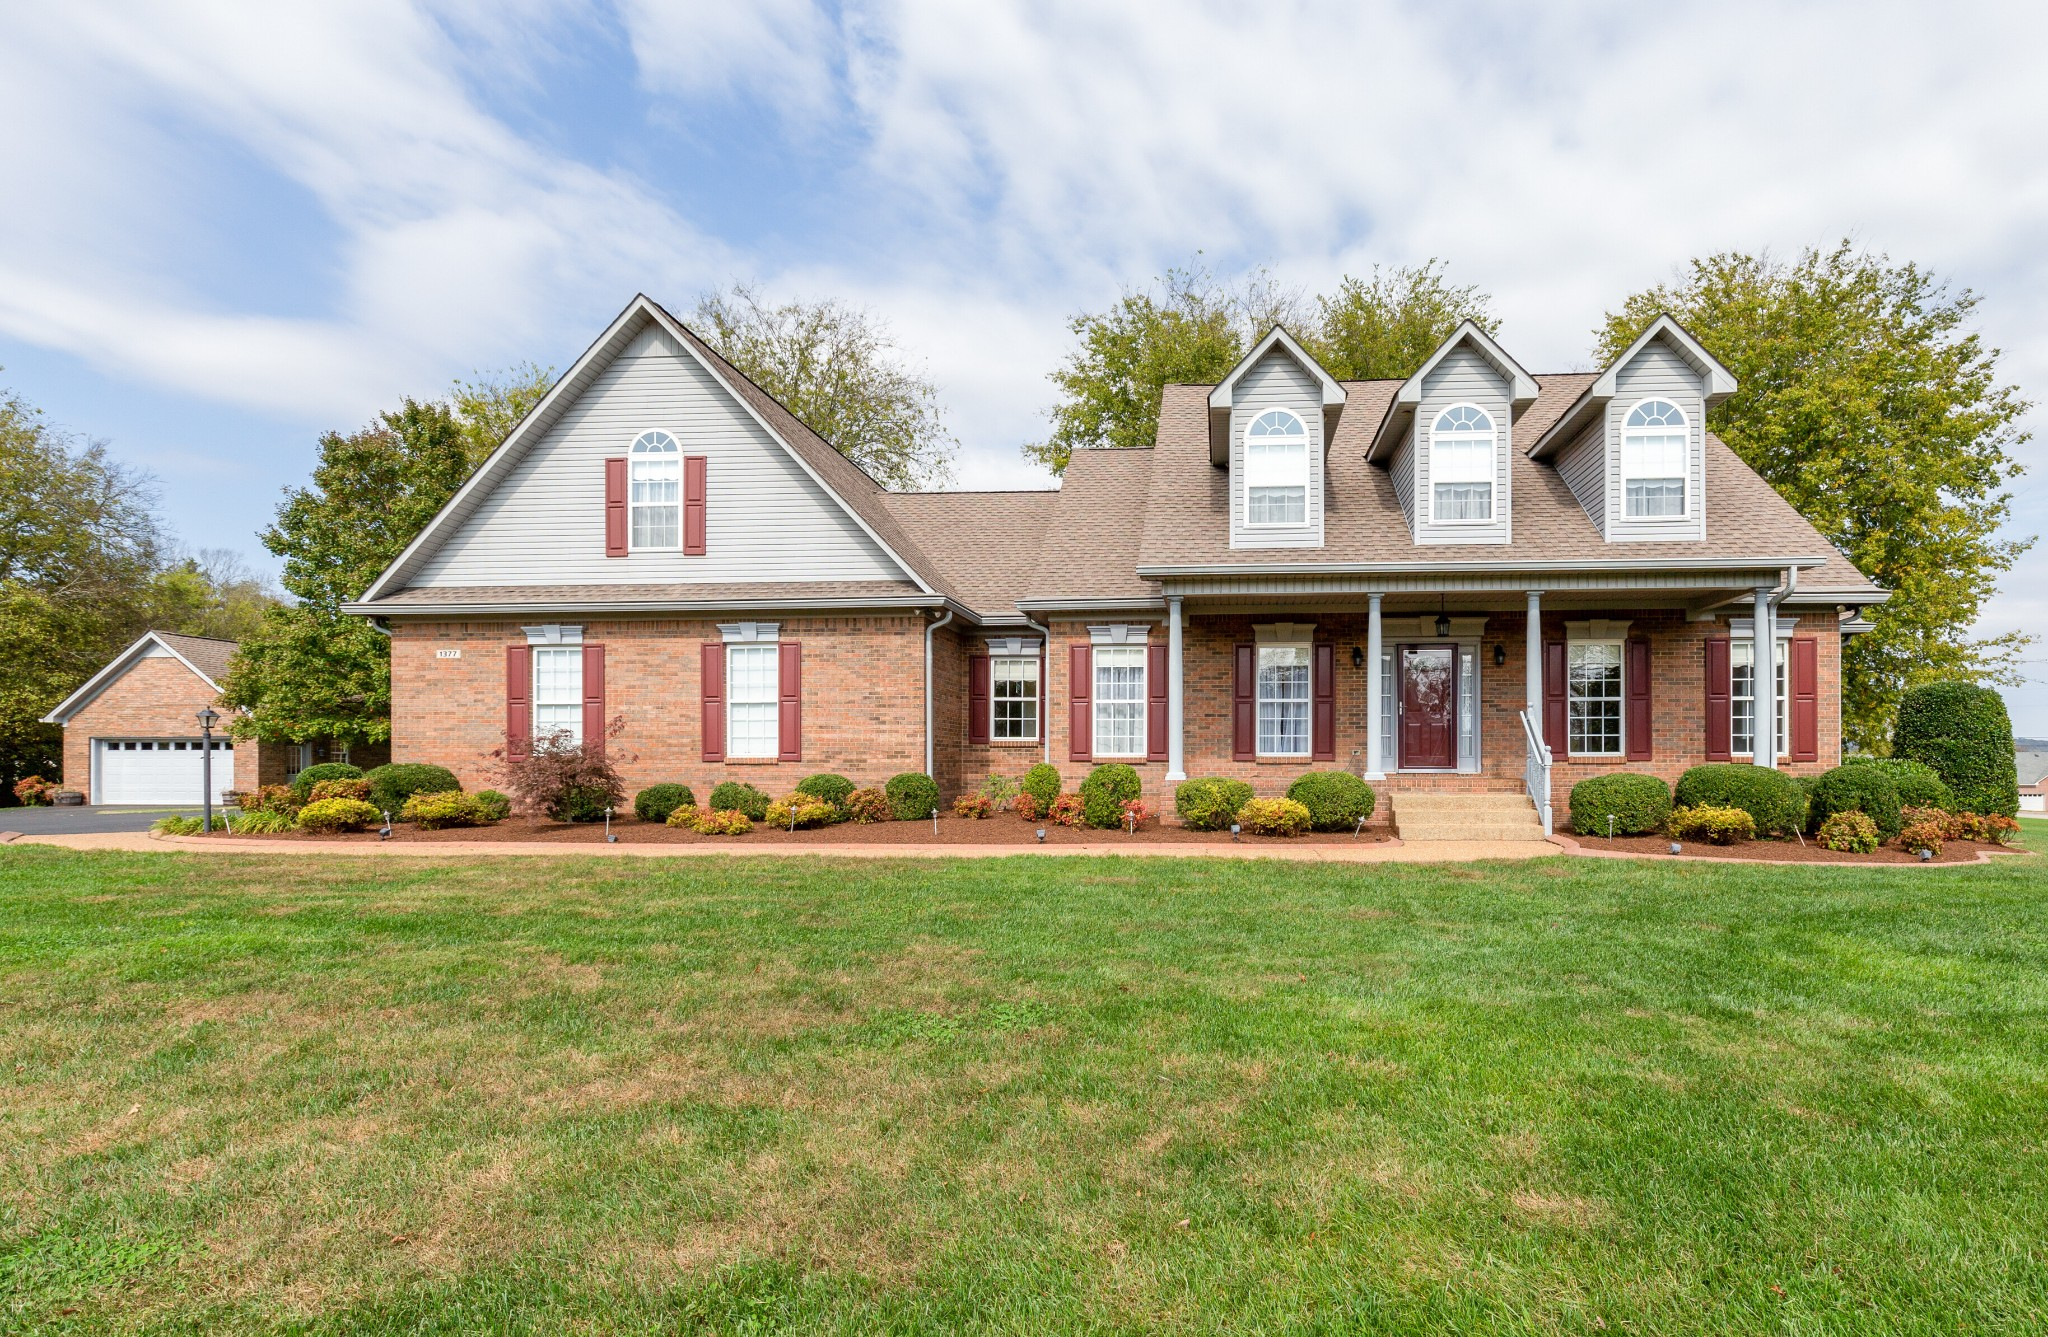 Beautiful all brick home on level 1 acre corner lot. You will be proud to welcome your friends and family to 1377 Charleston Ln. Perfect location. 10 minutes to The Crossings, 10 min to 840, 15 min to I-65, 20 min to Franklin. Home showcases beautiful wood floors, oversized bedrooms, & plenty of storage in the bonus room. Features: irrigation system, storm shelter in garage, central vac system, gas logs, additional 20 x 24 detached garage. Beautiful landscaping! New carpet in bedrooms/closets